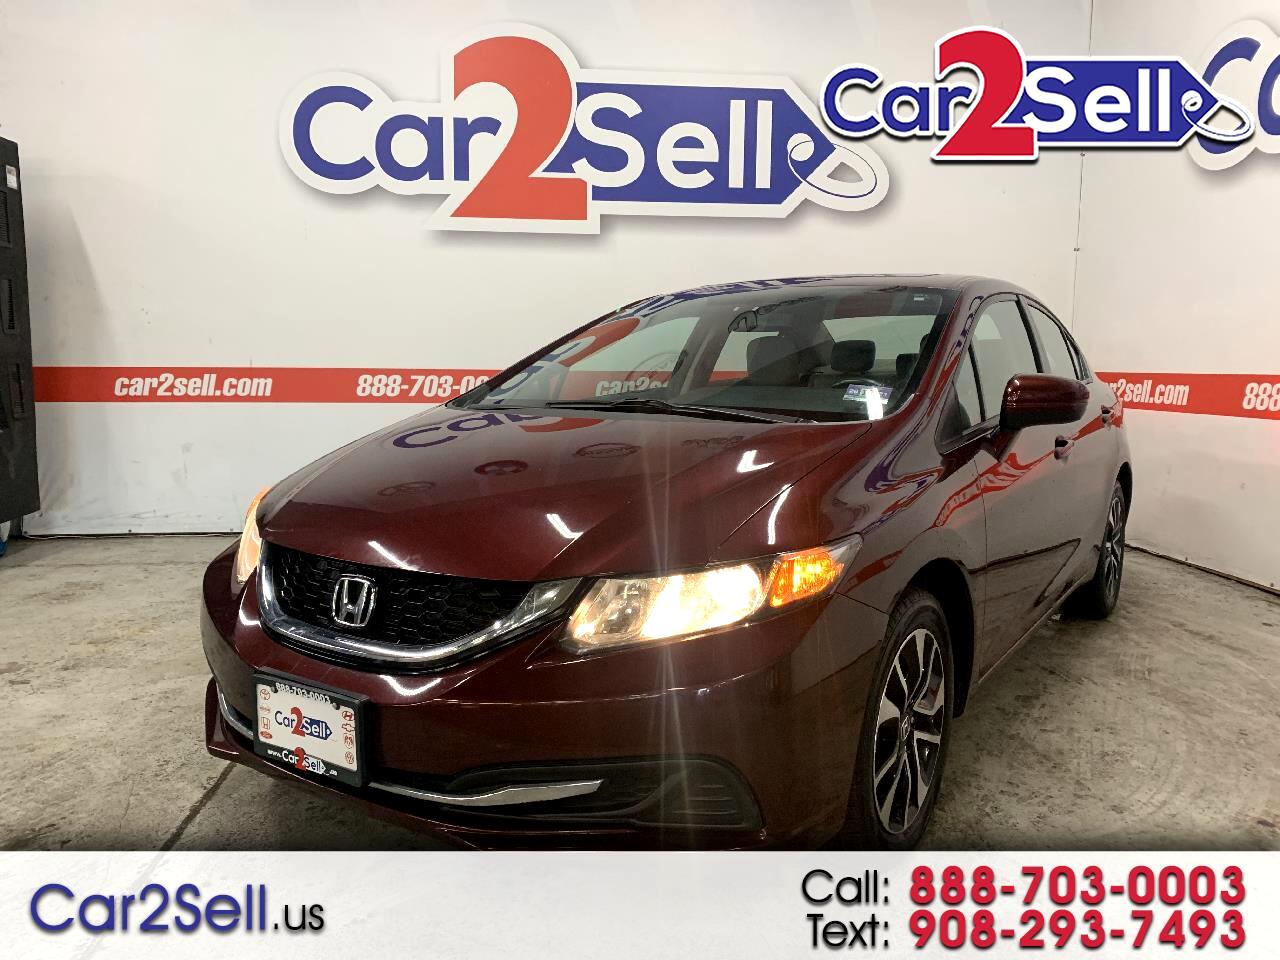 Used Honda Civic Sedan Hillside Nj